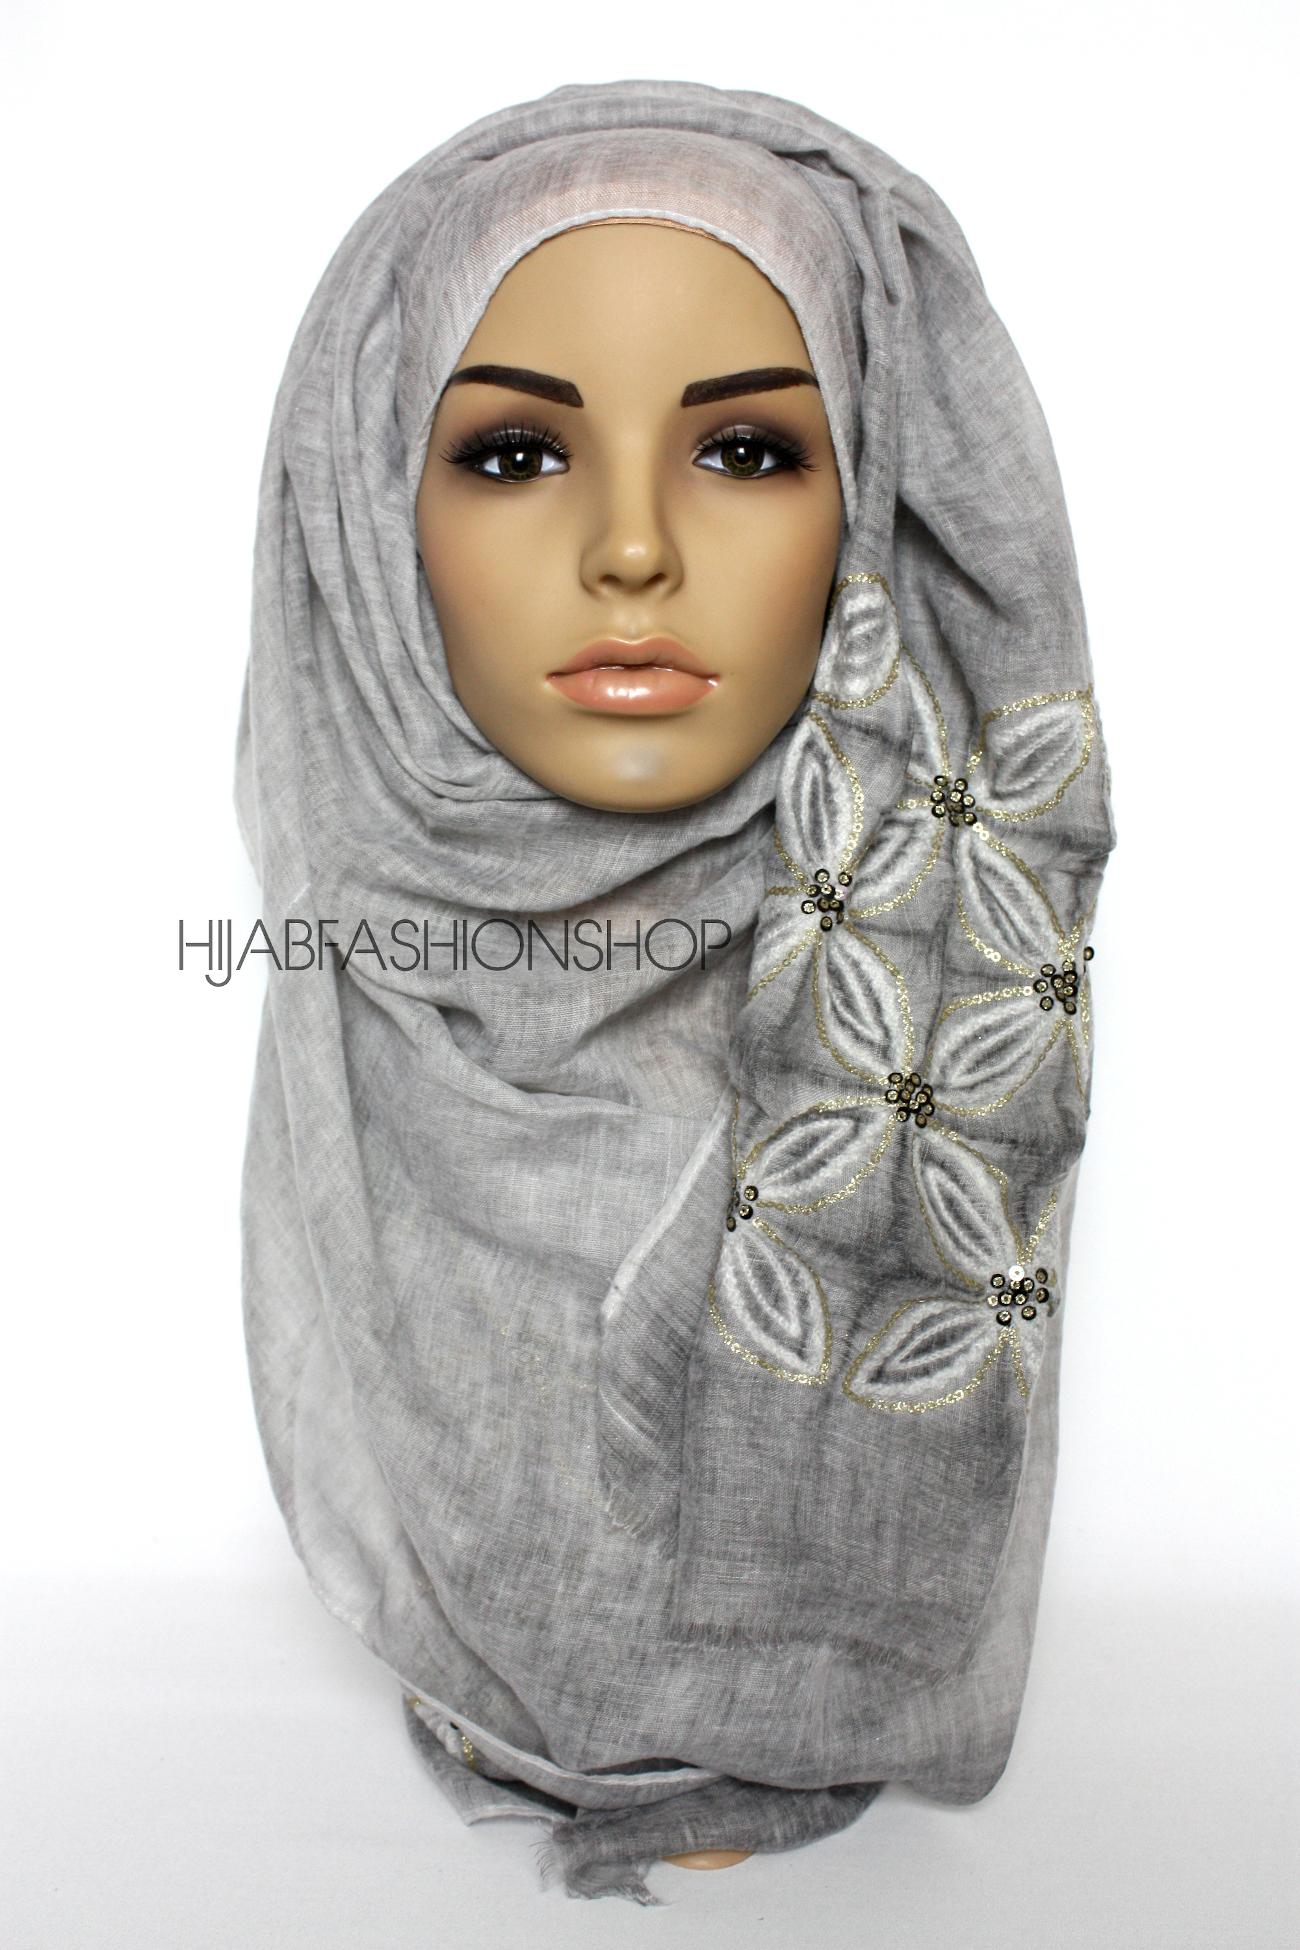 grey linen look hijab with lilies embroidery and sequins